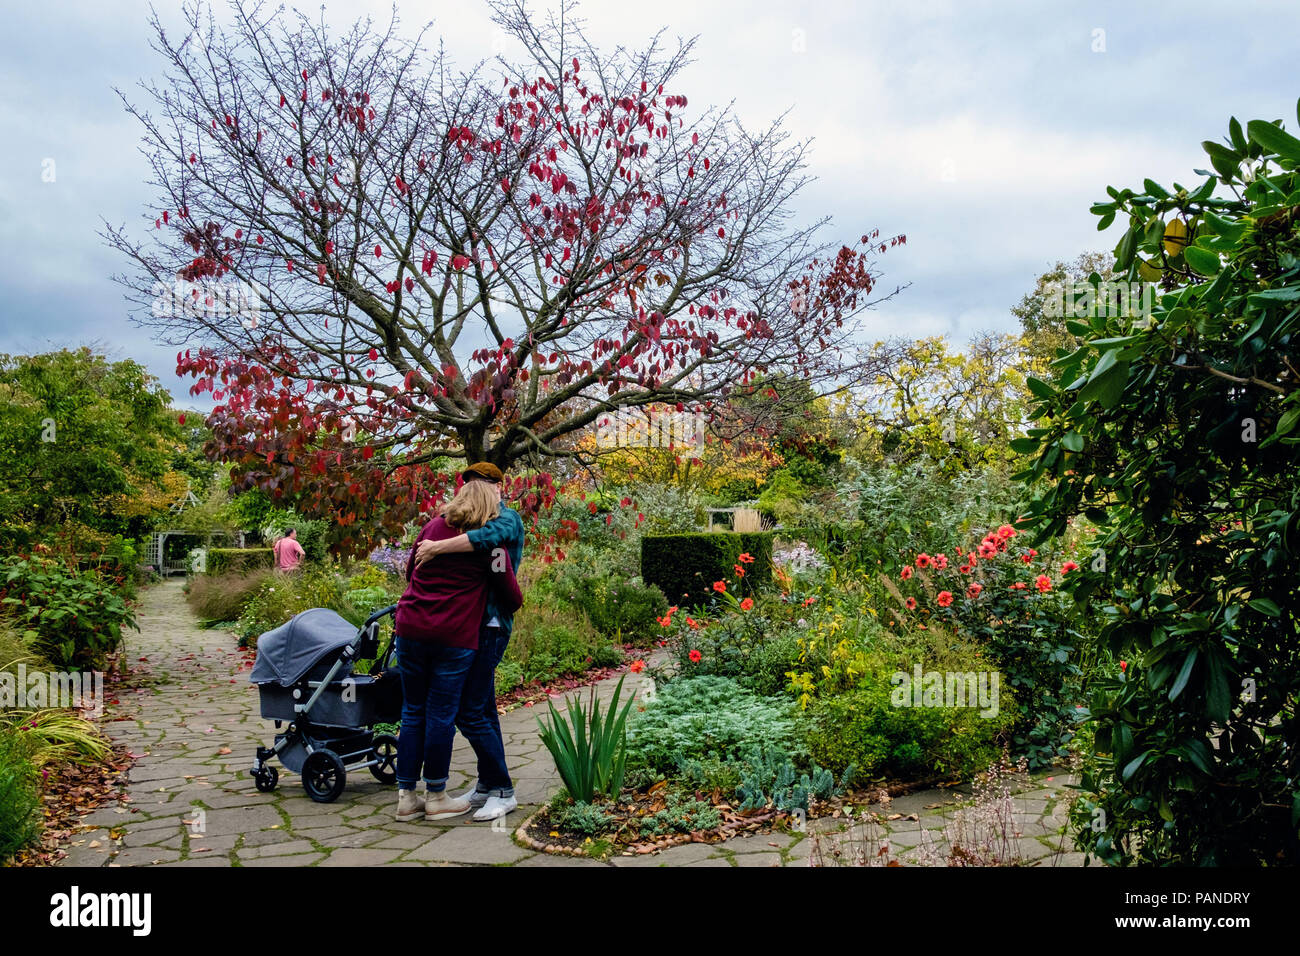 Young couple hug and kiss next to a baby buggy in Walled Garden, during Autumn in Brockwell Park, Herne Hill, South London, Uk - Stock Image